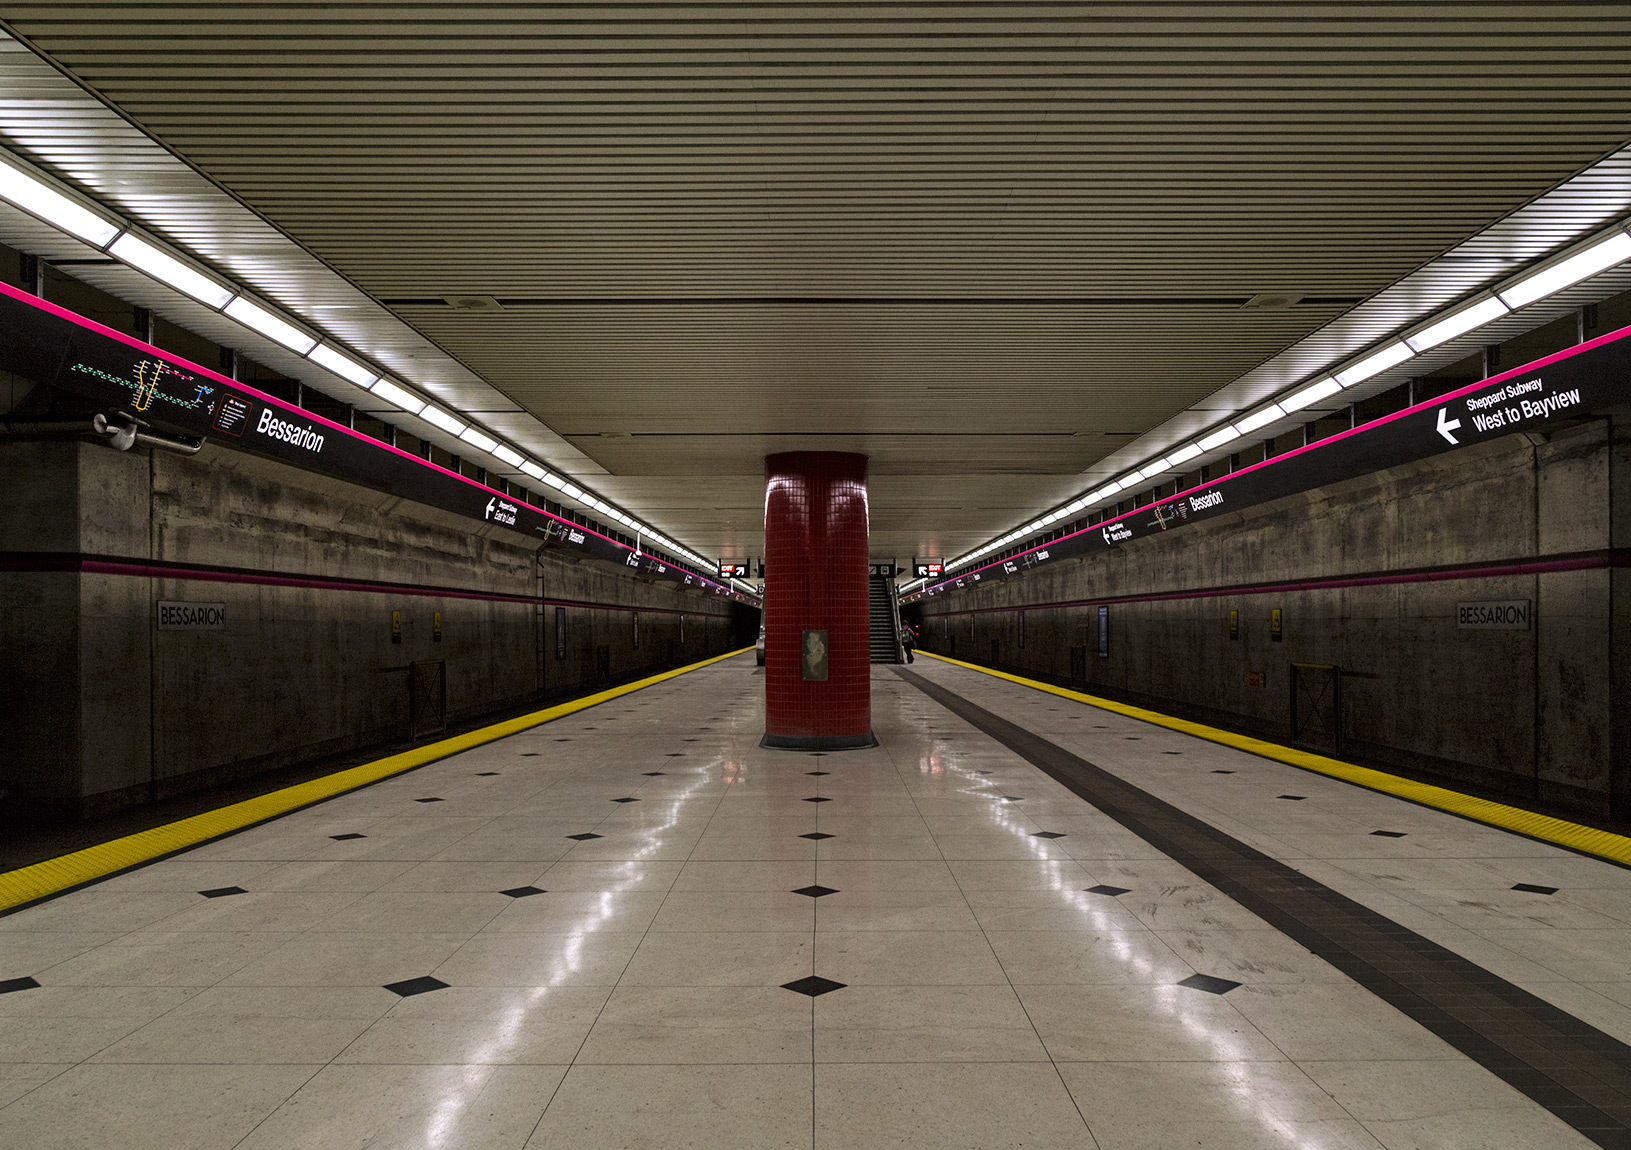 20160616. The Bessarian perspective on the TTC's Sheppard Line.